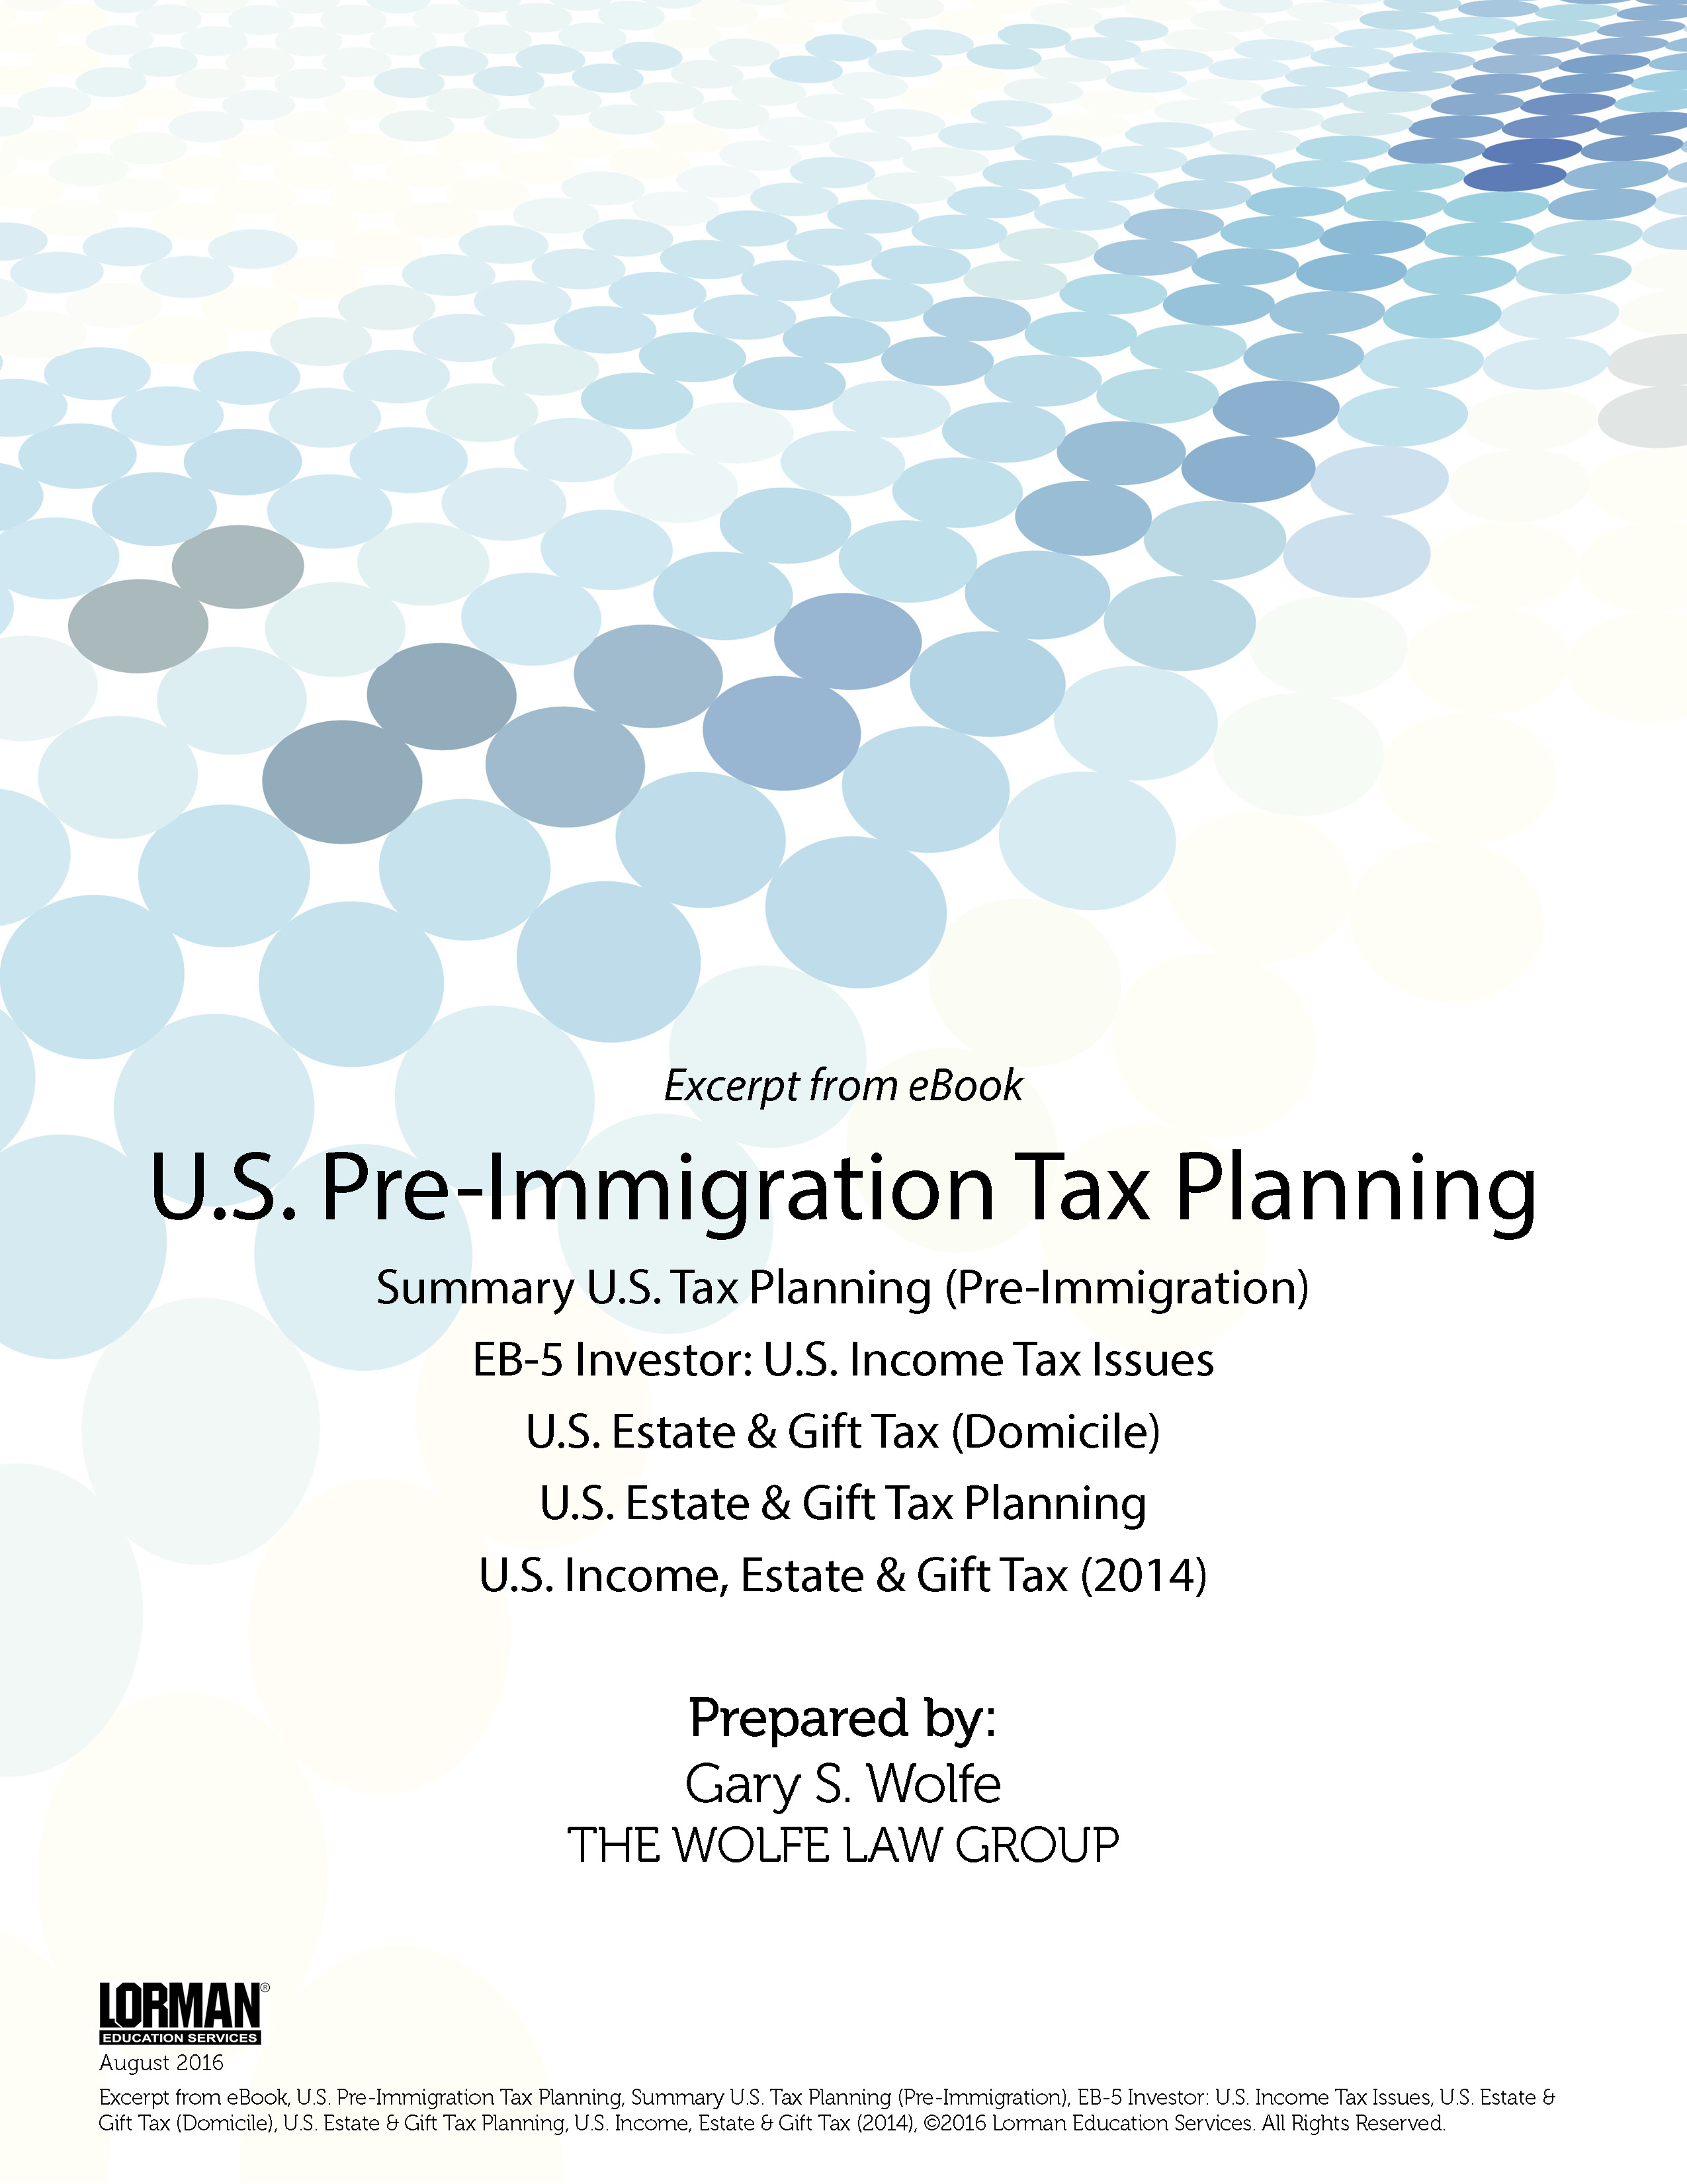 Pre-Immigration Tax Planning: U.S. Income, Estate and Gift Tax; EB-5 Investor